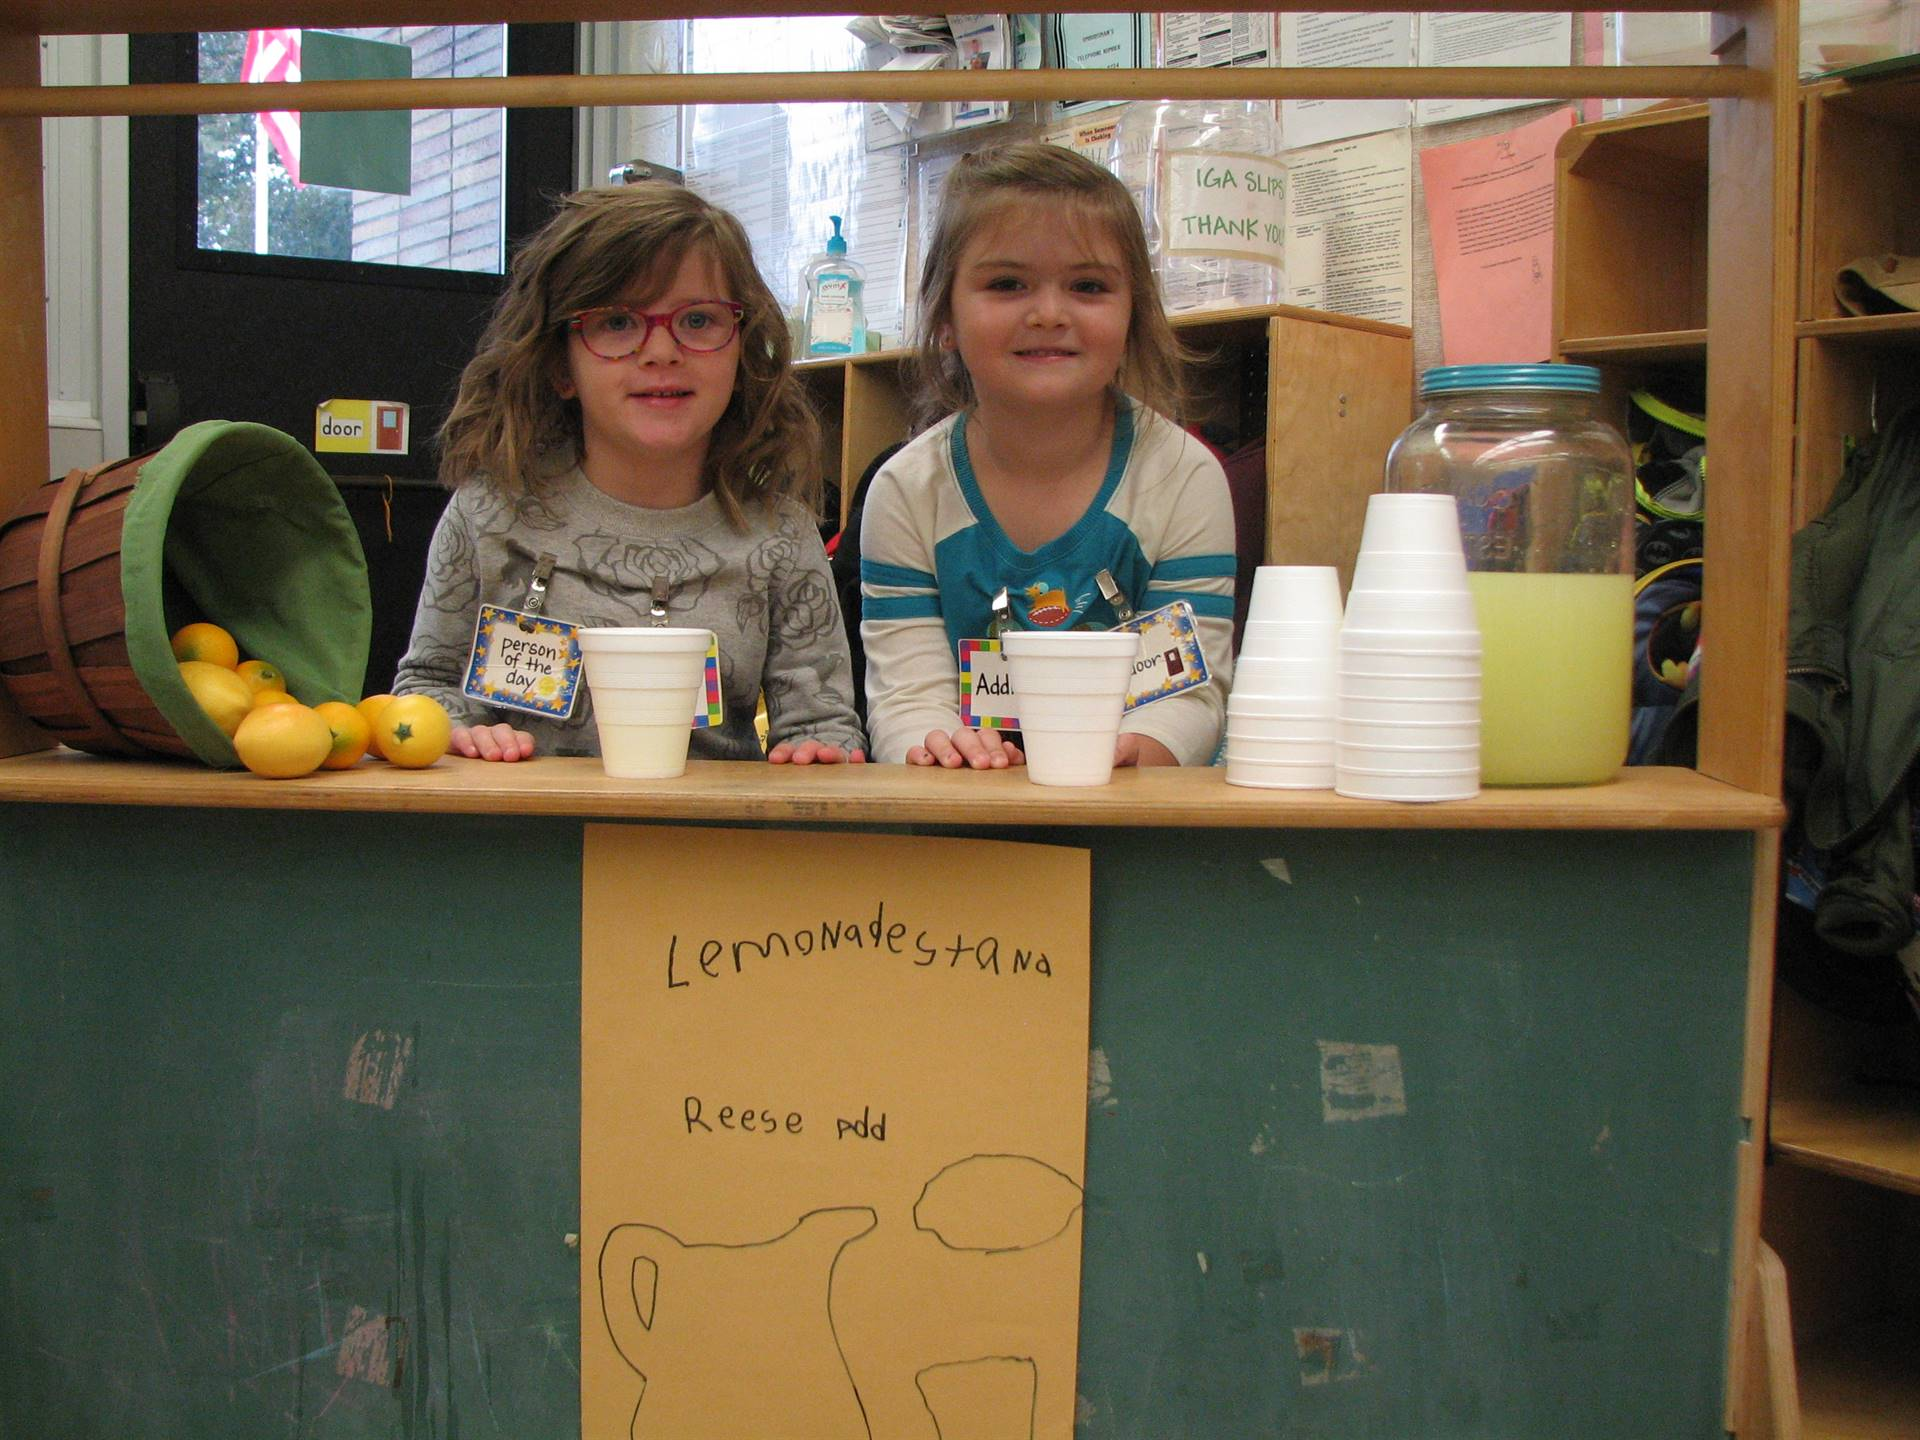 Preschoolers enjoy their lemonade stand